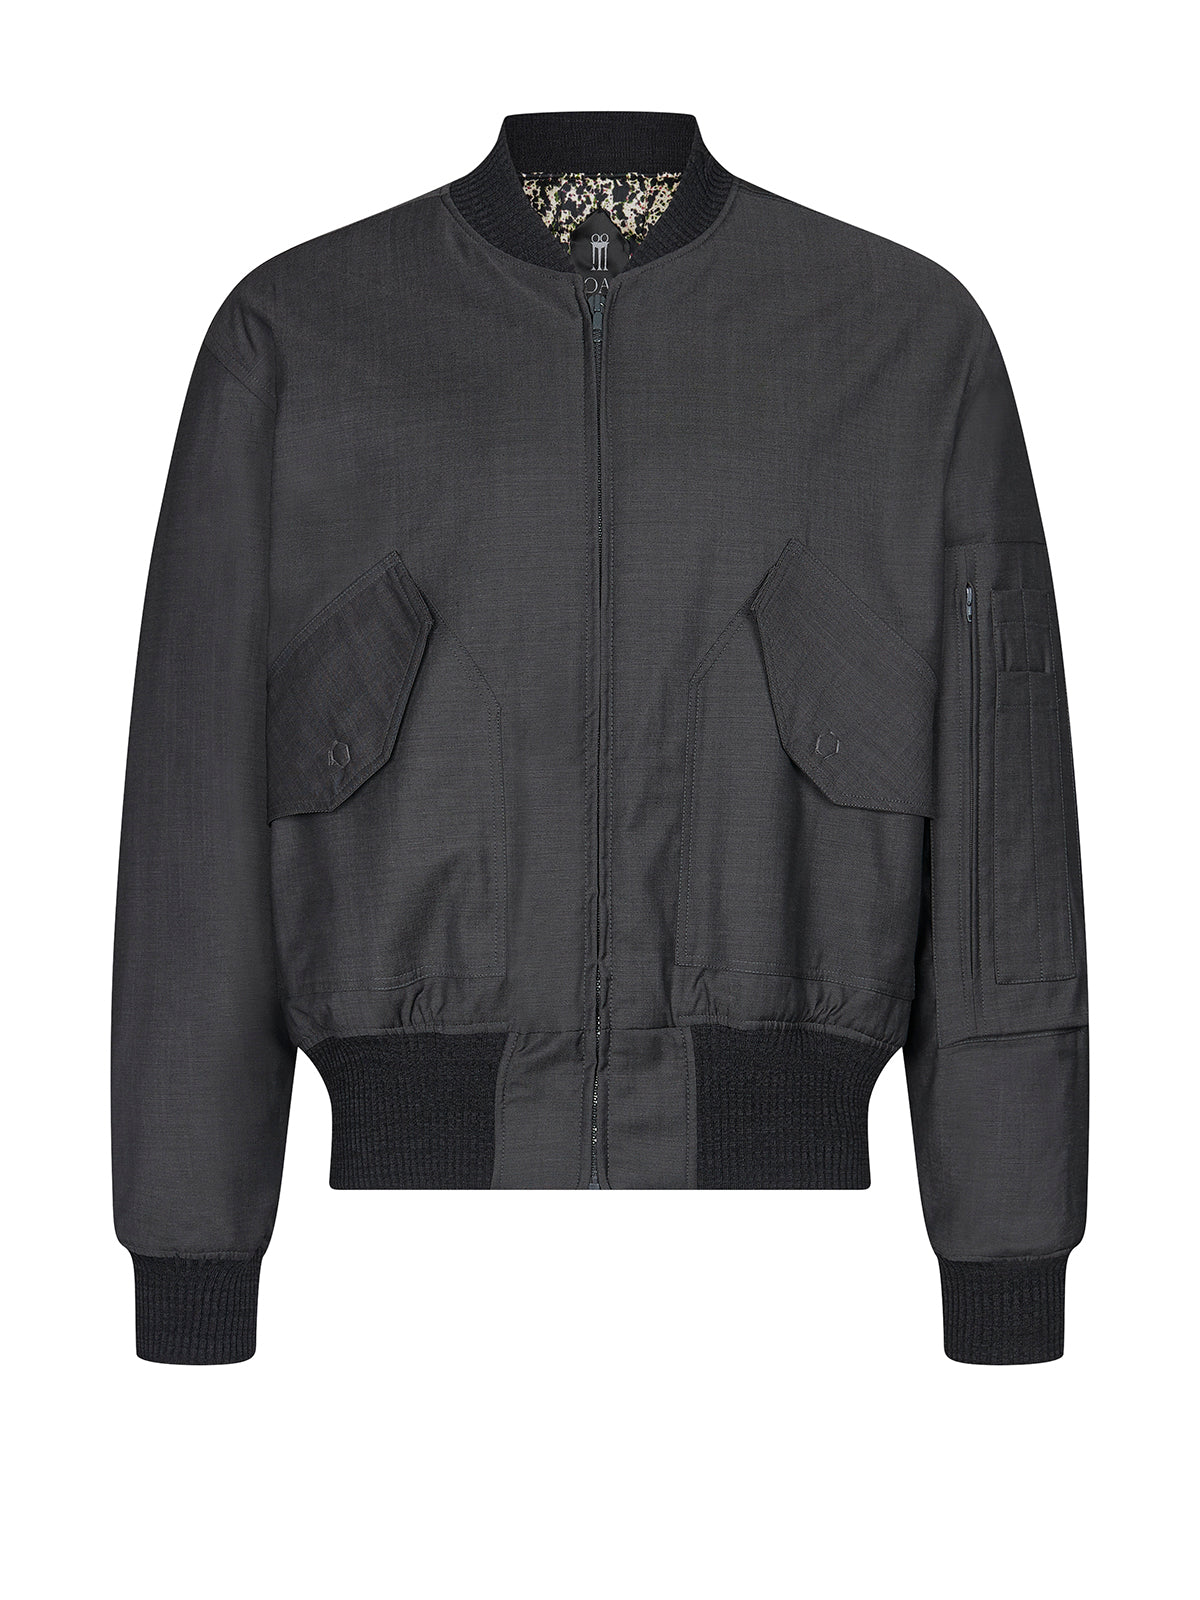 Iceman bomber jacket in grey